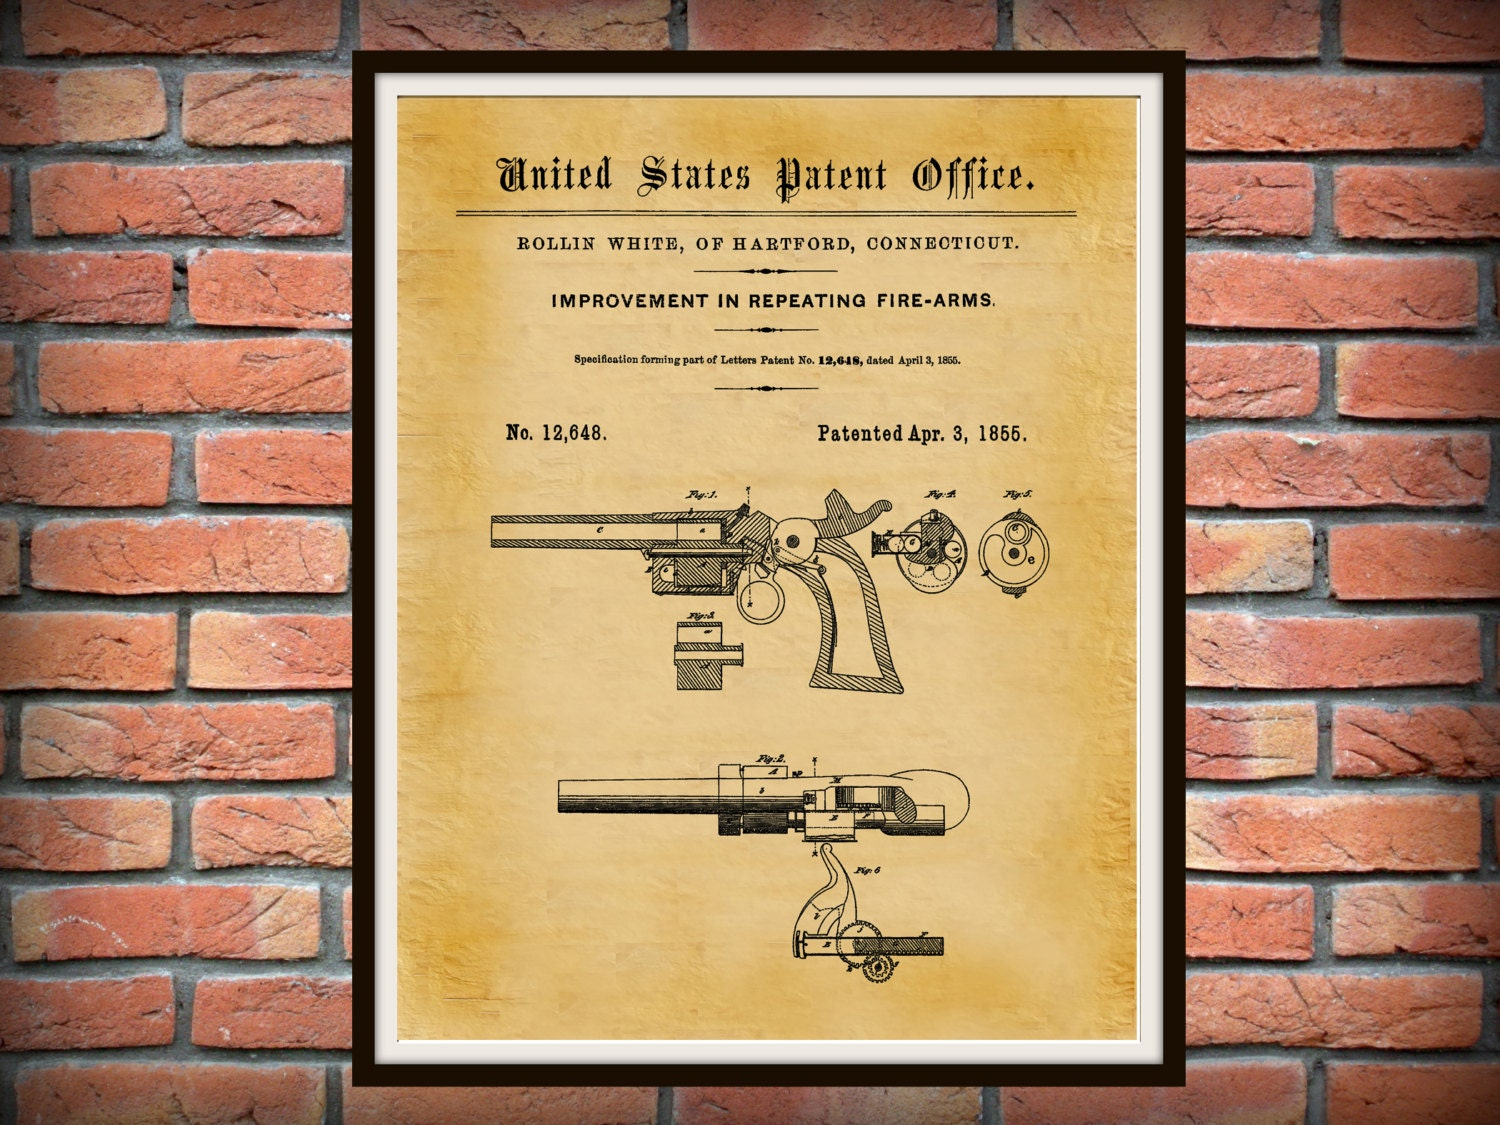 1855 Smith and Wesson Patent S&W Repeating Firearm - Poster ...